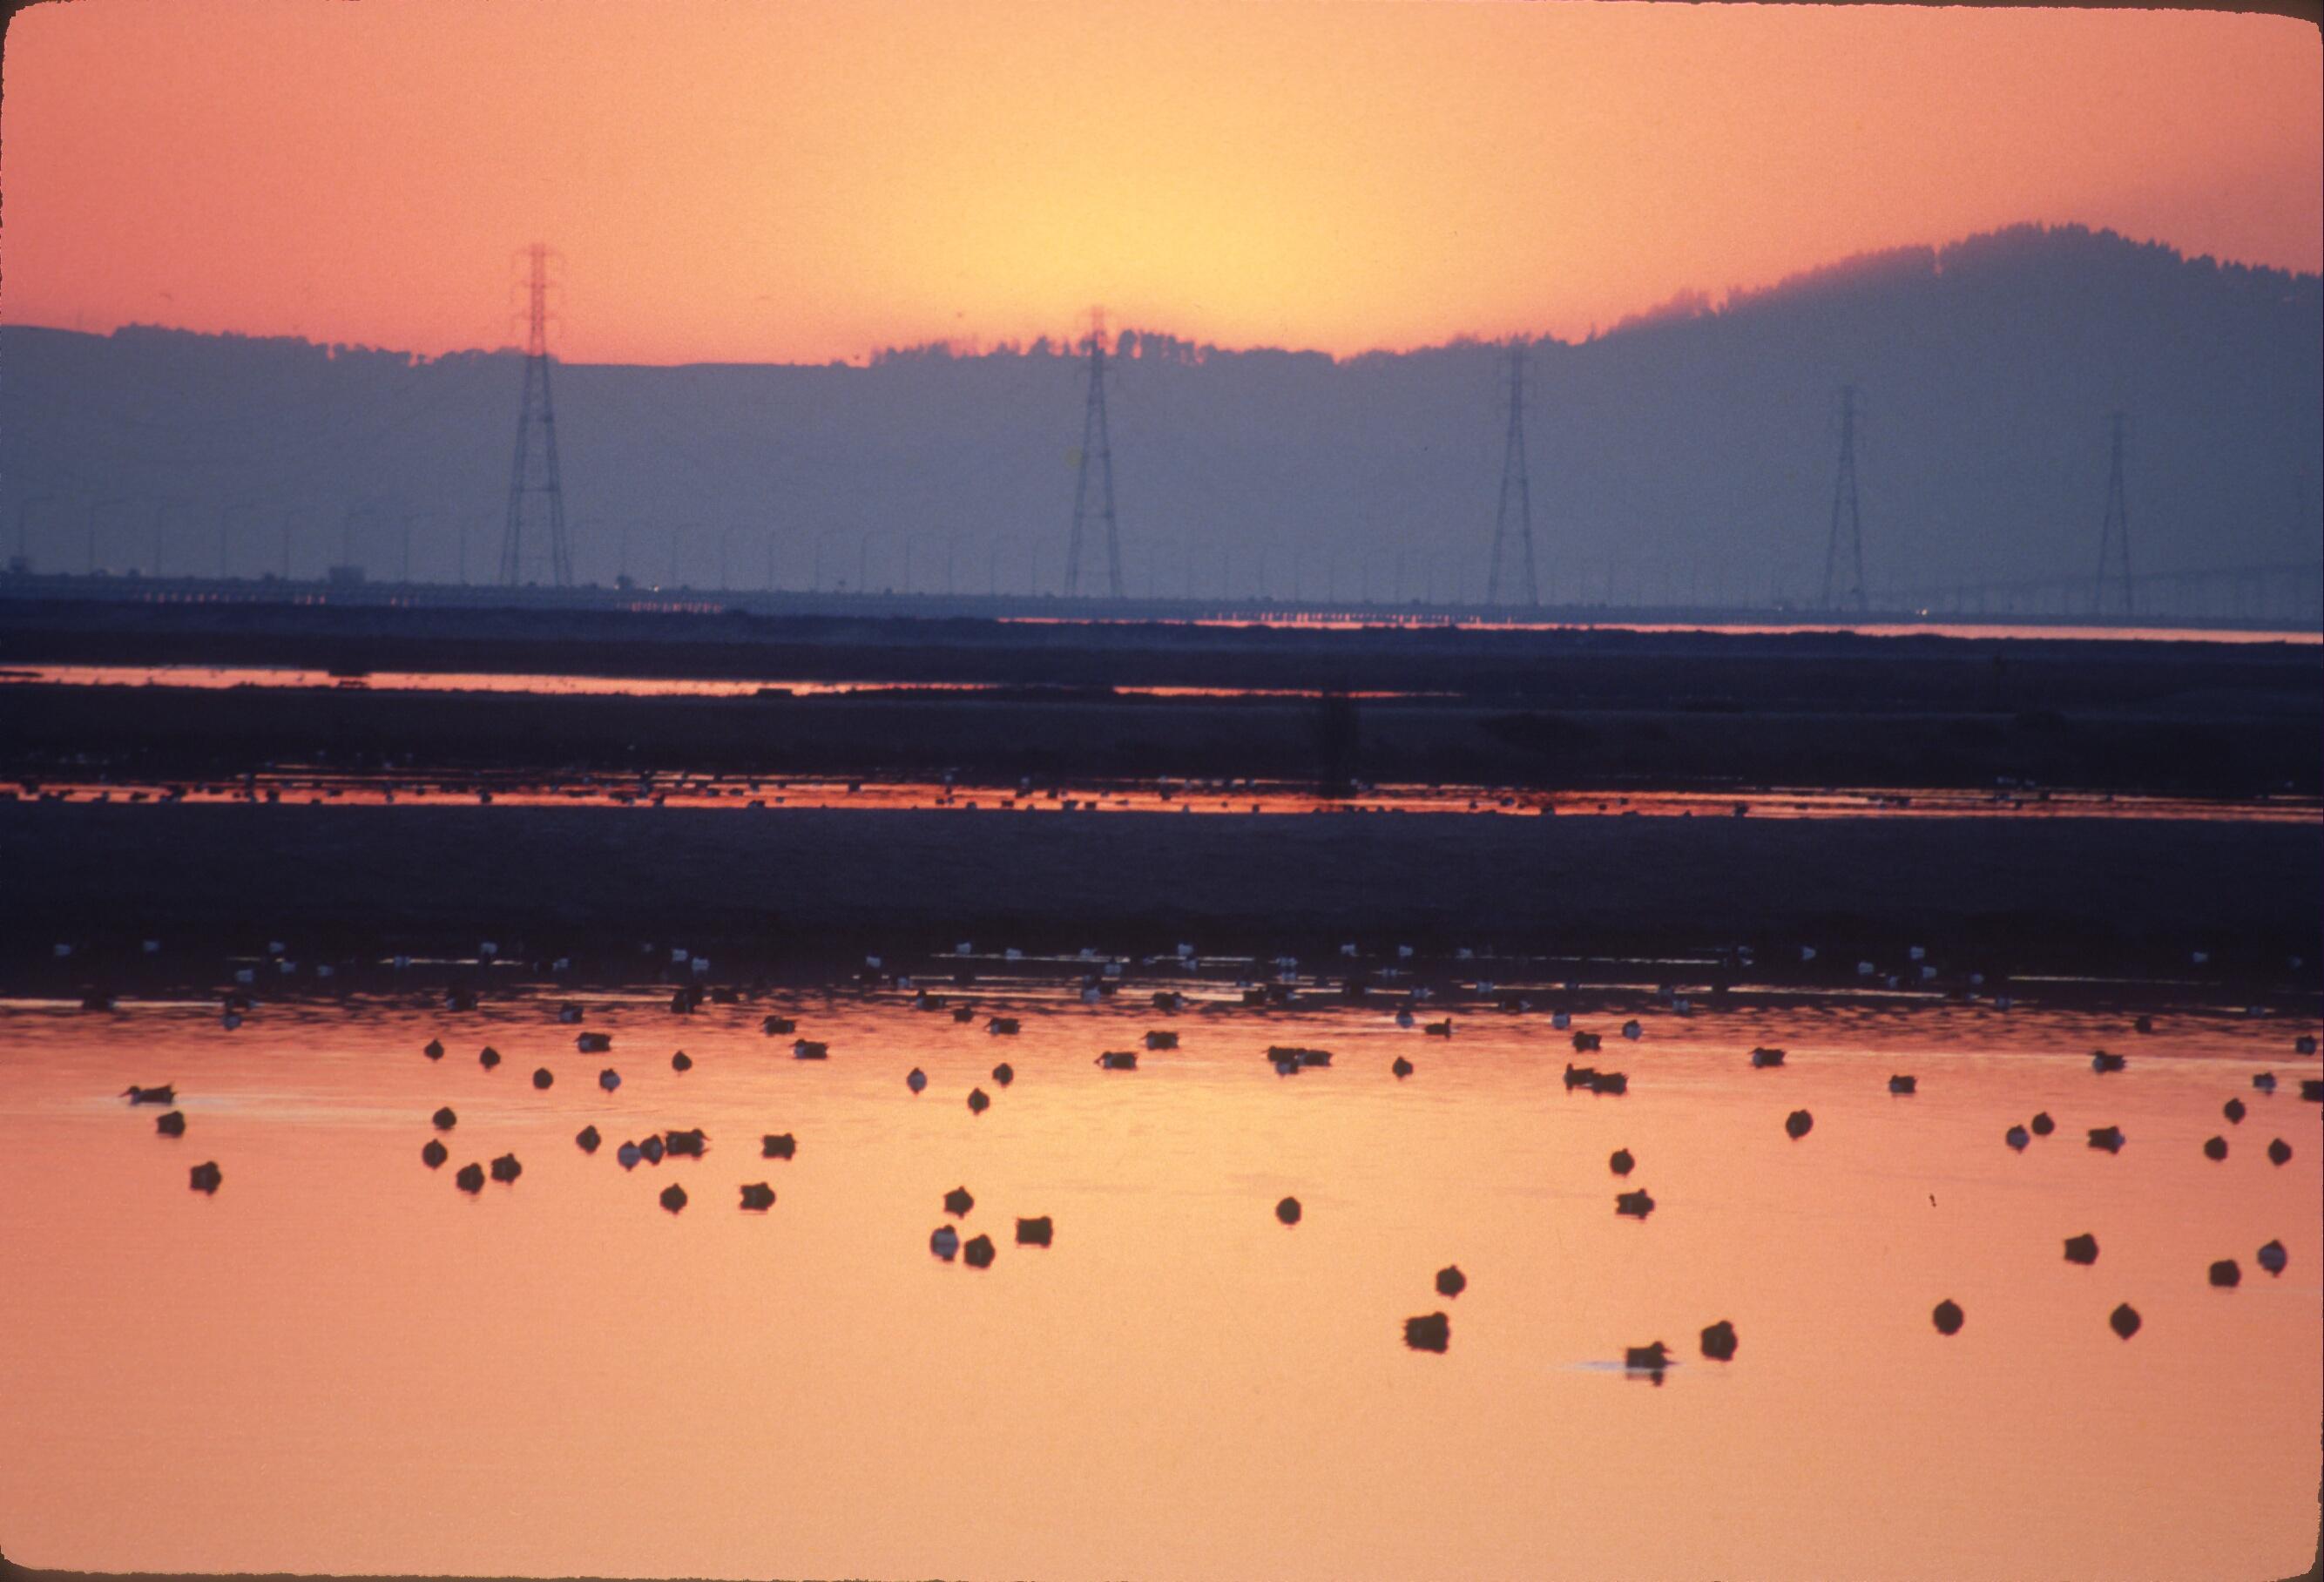 Ducks in salt ponds